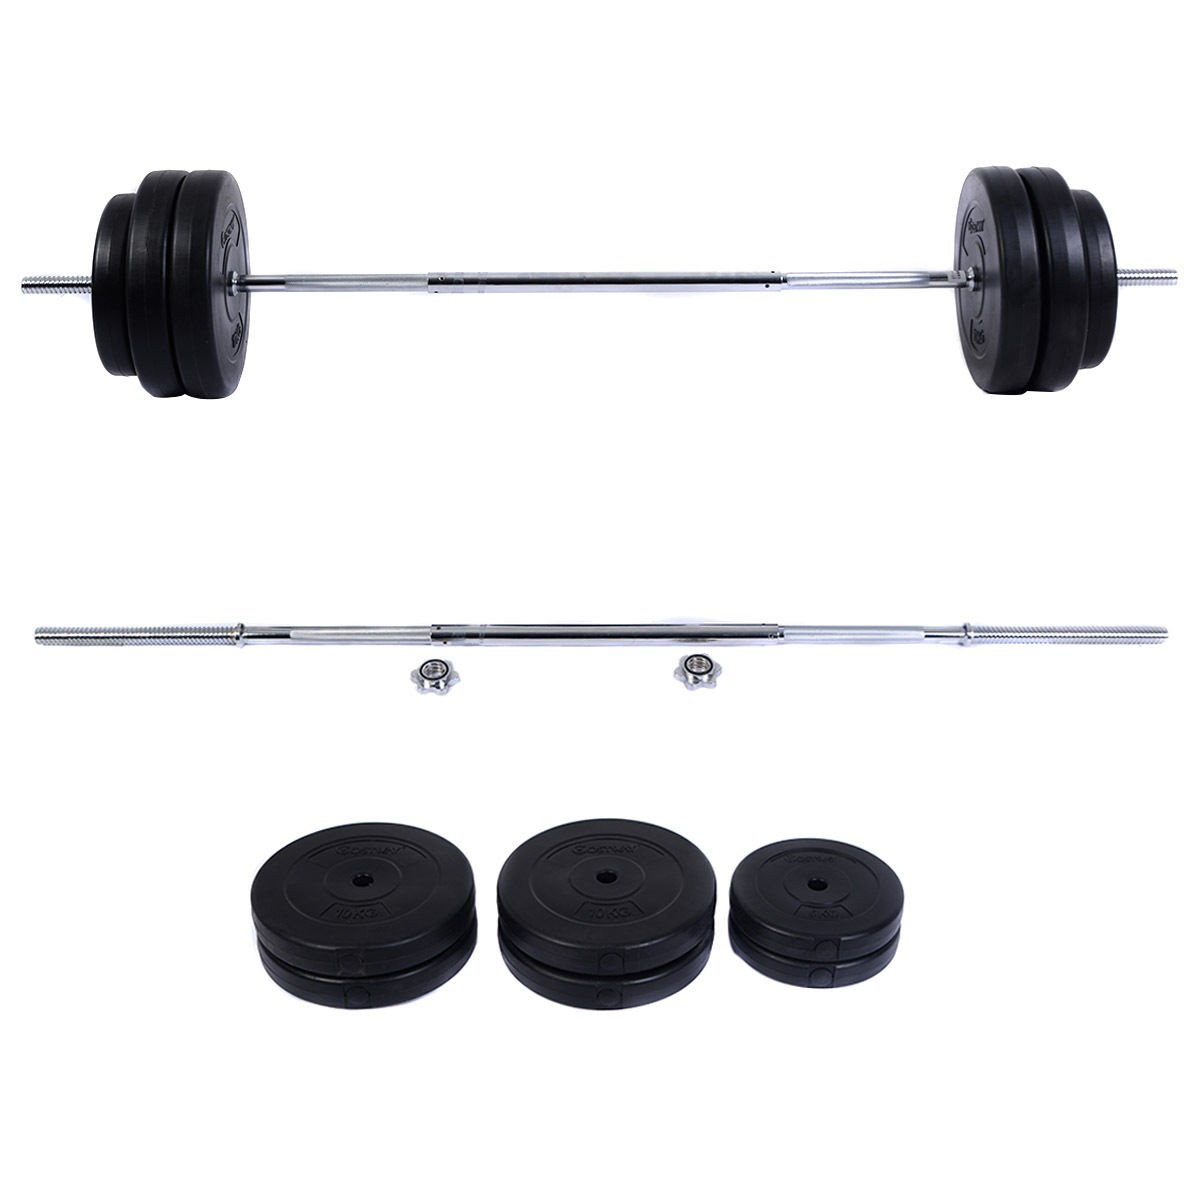 124 Lb Barbell Dumbbell Weight Set Gym Lifting Exercise Curl Bar